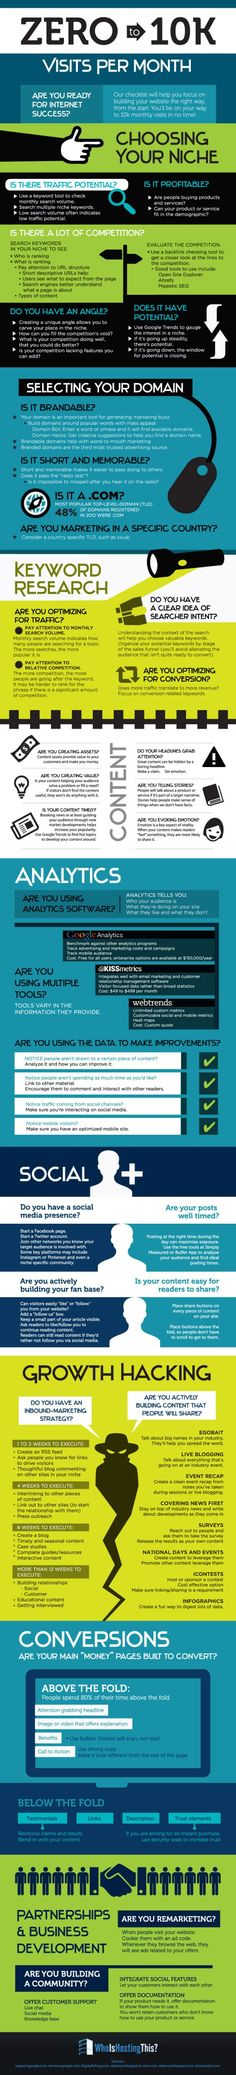 How to increase Website Traffic from Zero to 10K For more tips and resources visit www.socialmediamamma.com [Infographic]